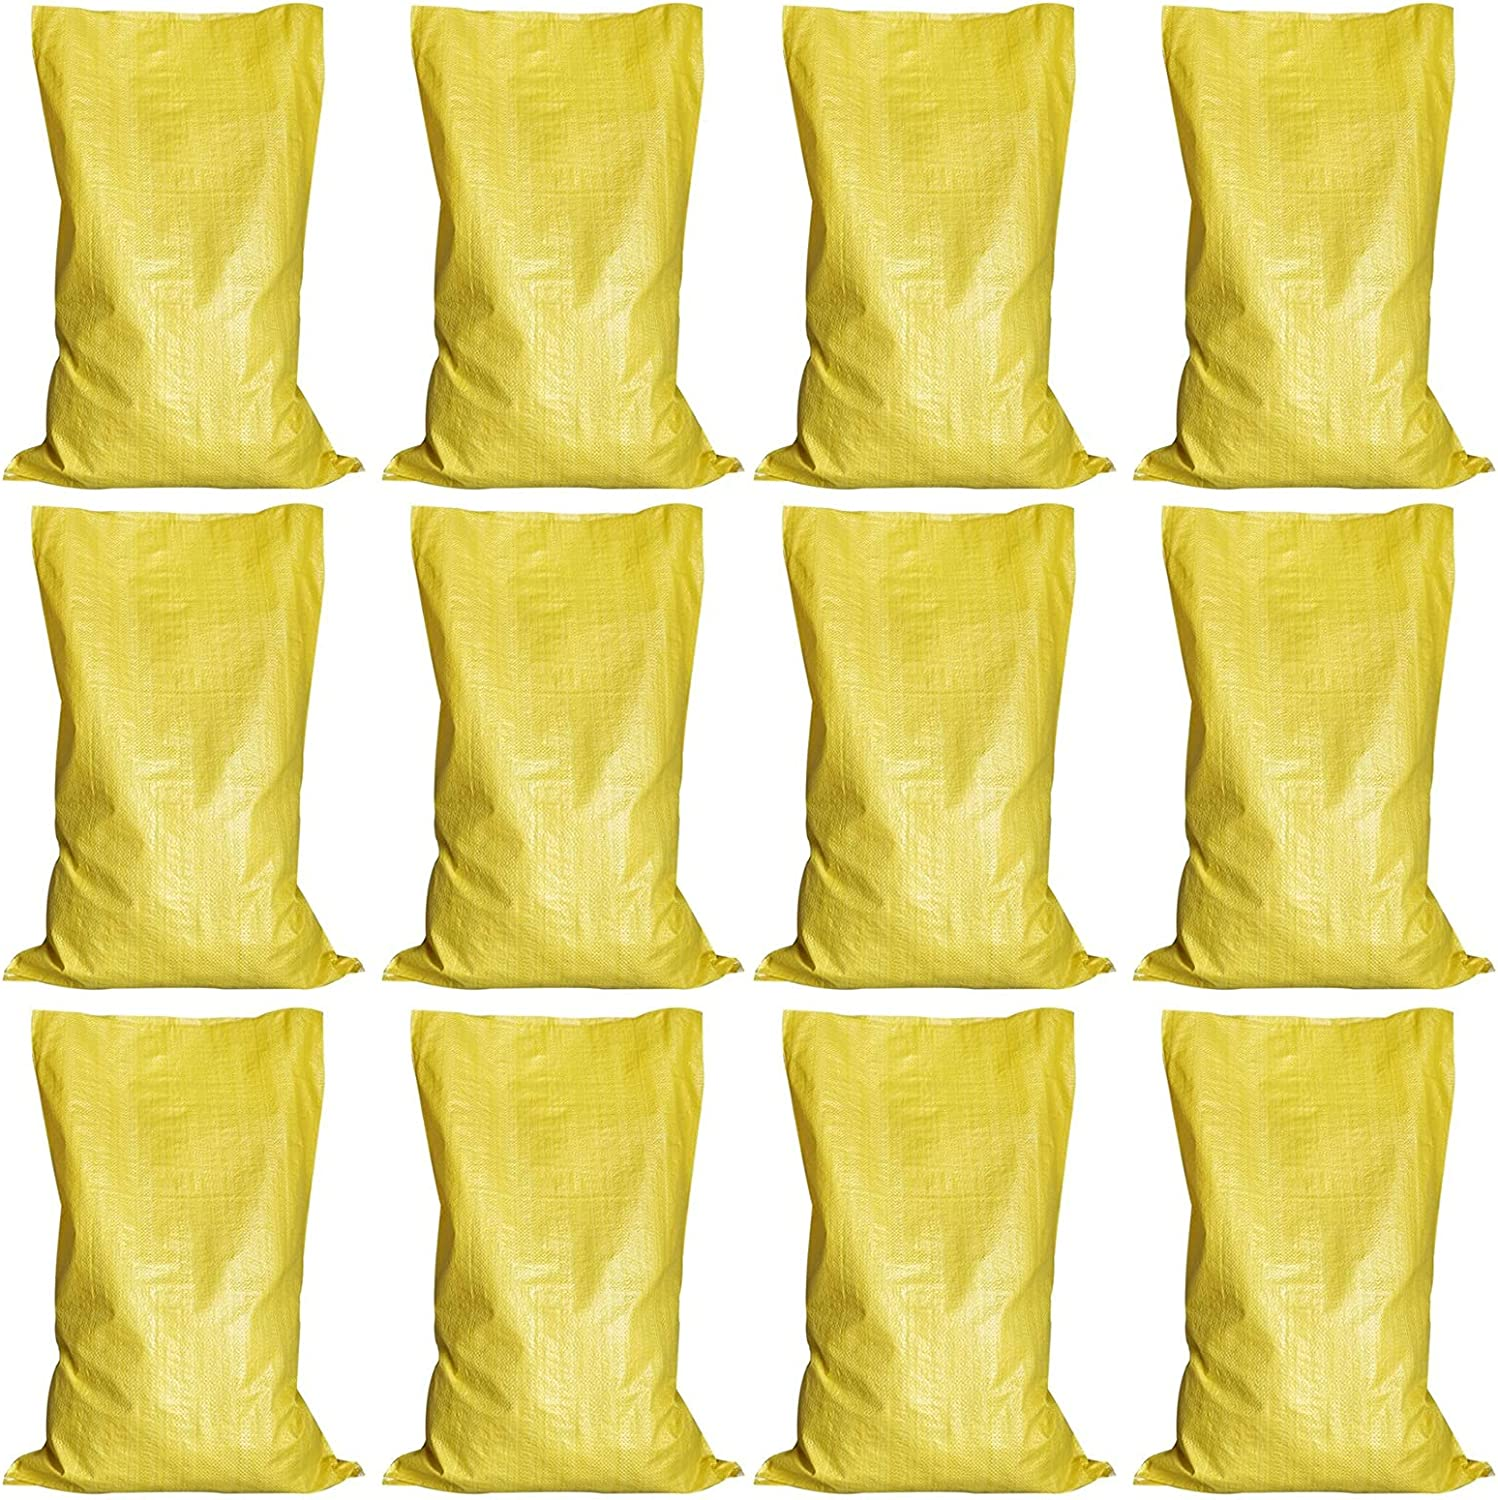 Empty Sand Bags Heavy Duty Woven Soldering 35% OFF for Polypropylene wit Flooding